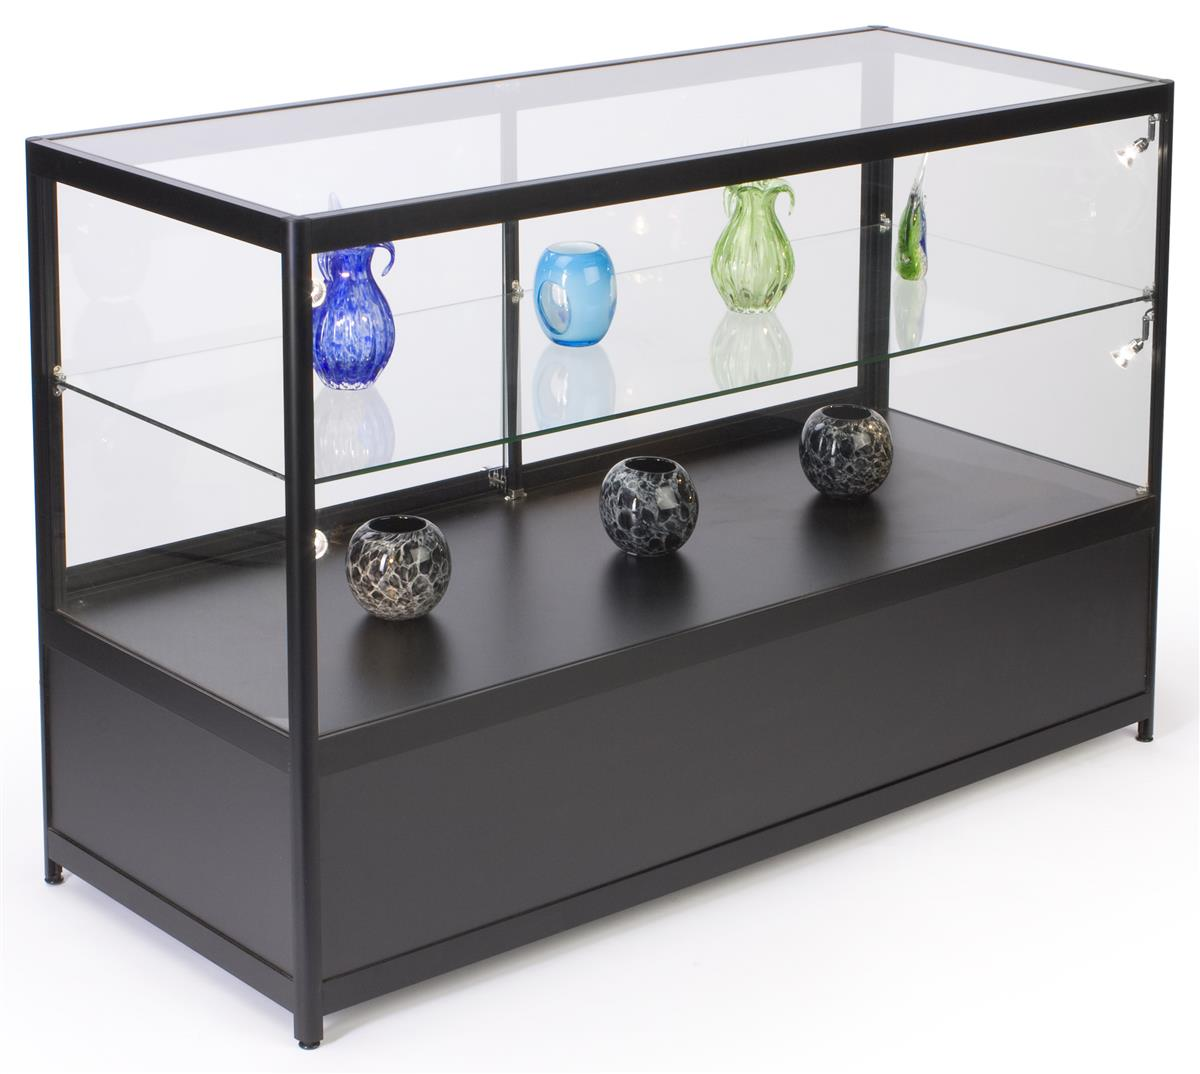 led storage retail display case black aluminum tempered glass. Black Bedroom Furniture Sets. Home Design Ideas